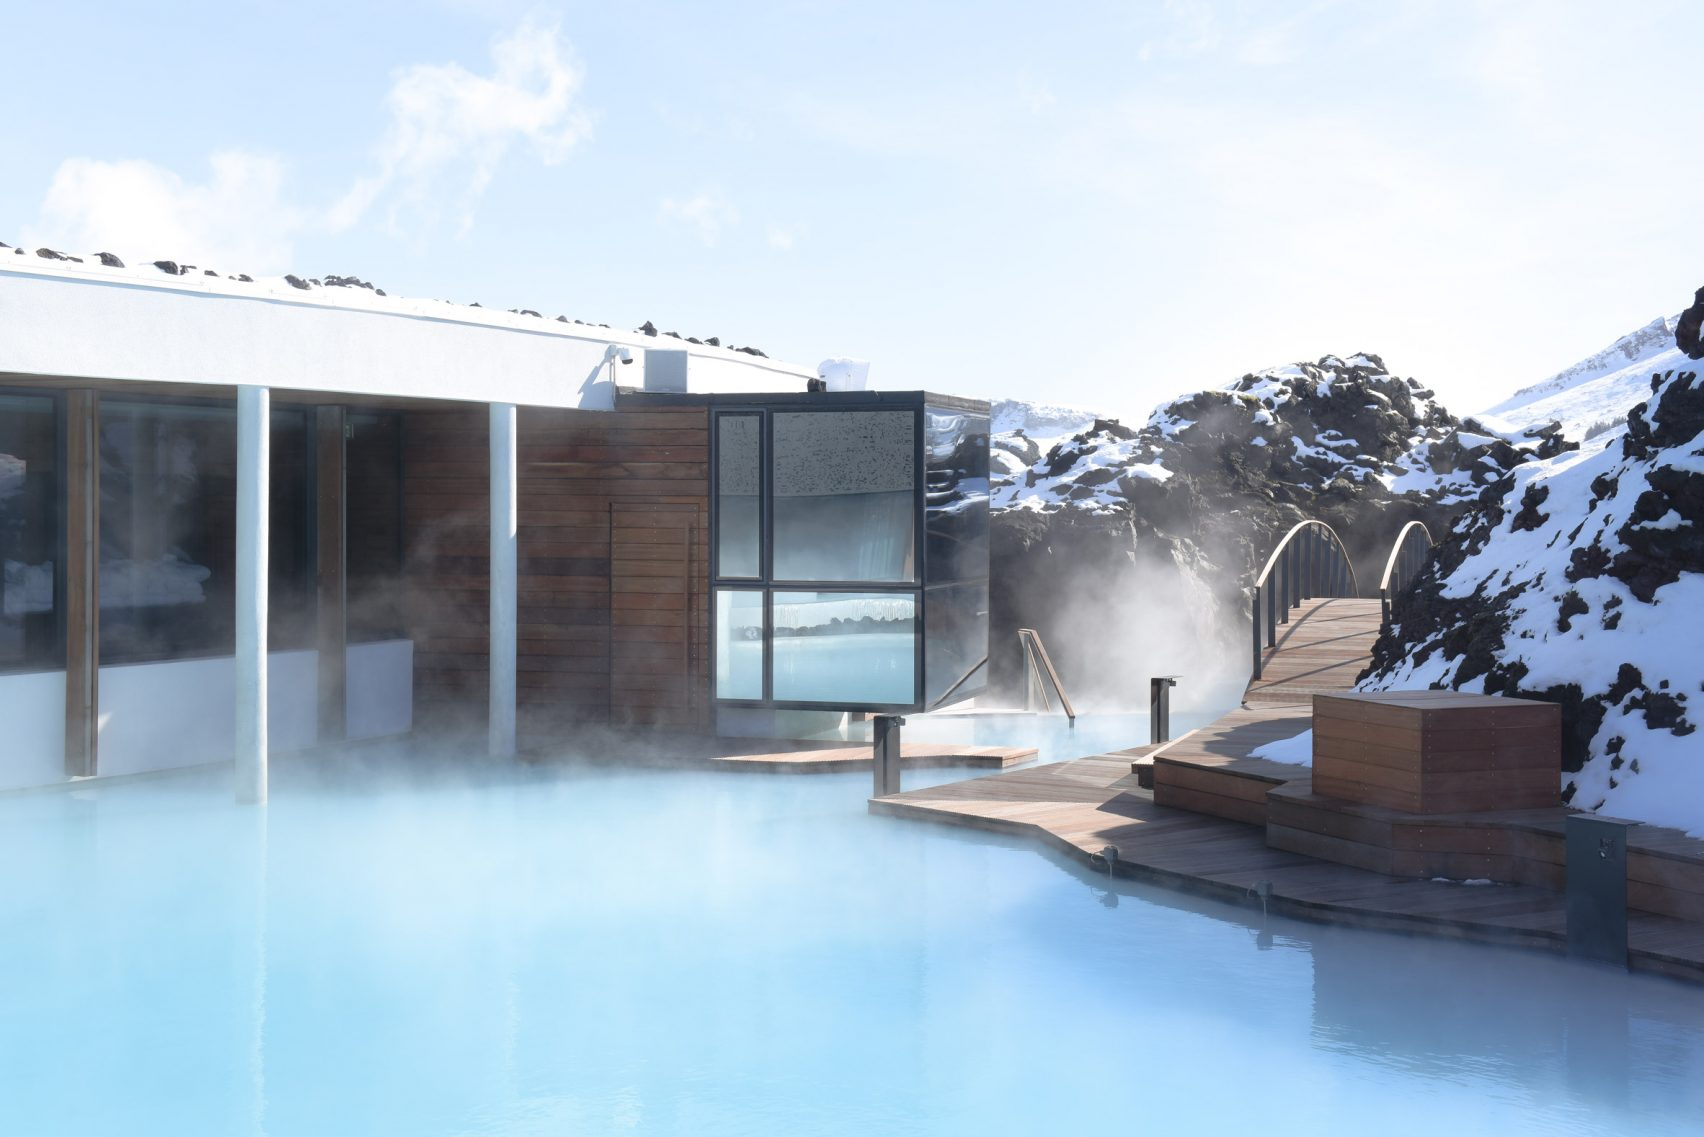 La Laguna Azul en Islandia / The Retreat at Blue Lagoon